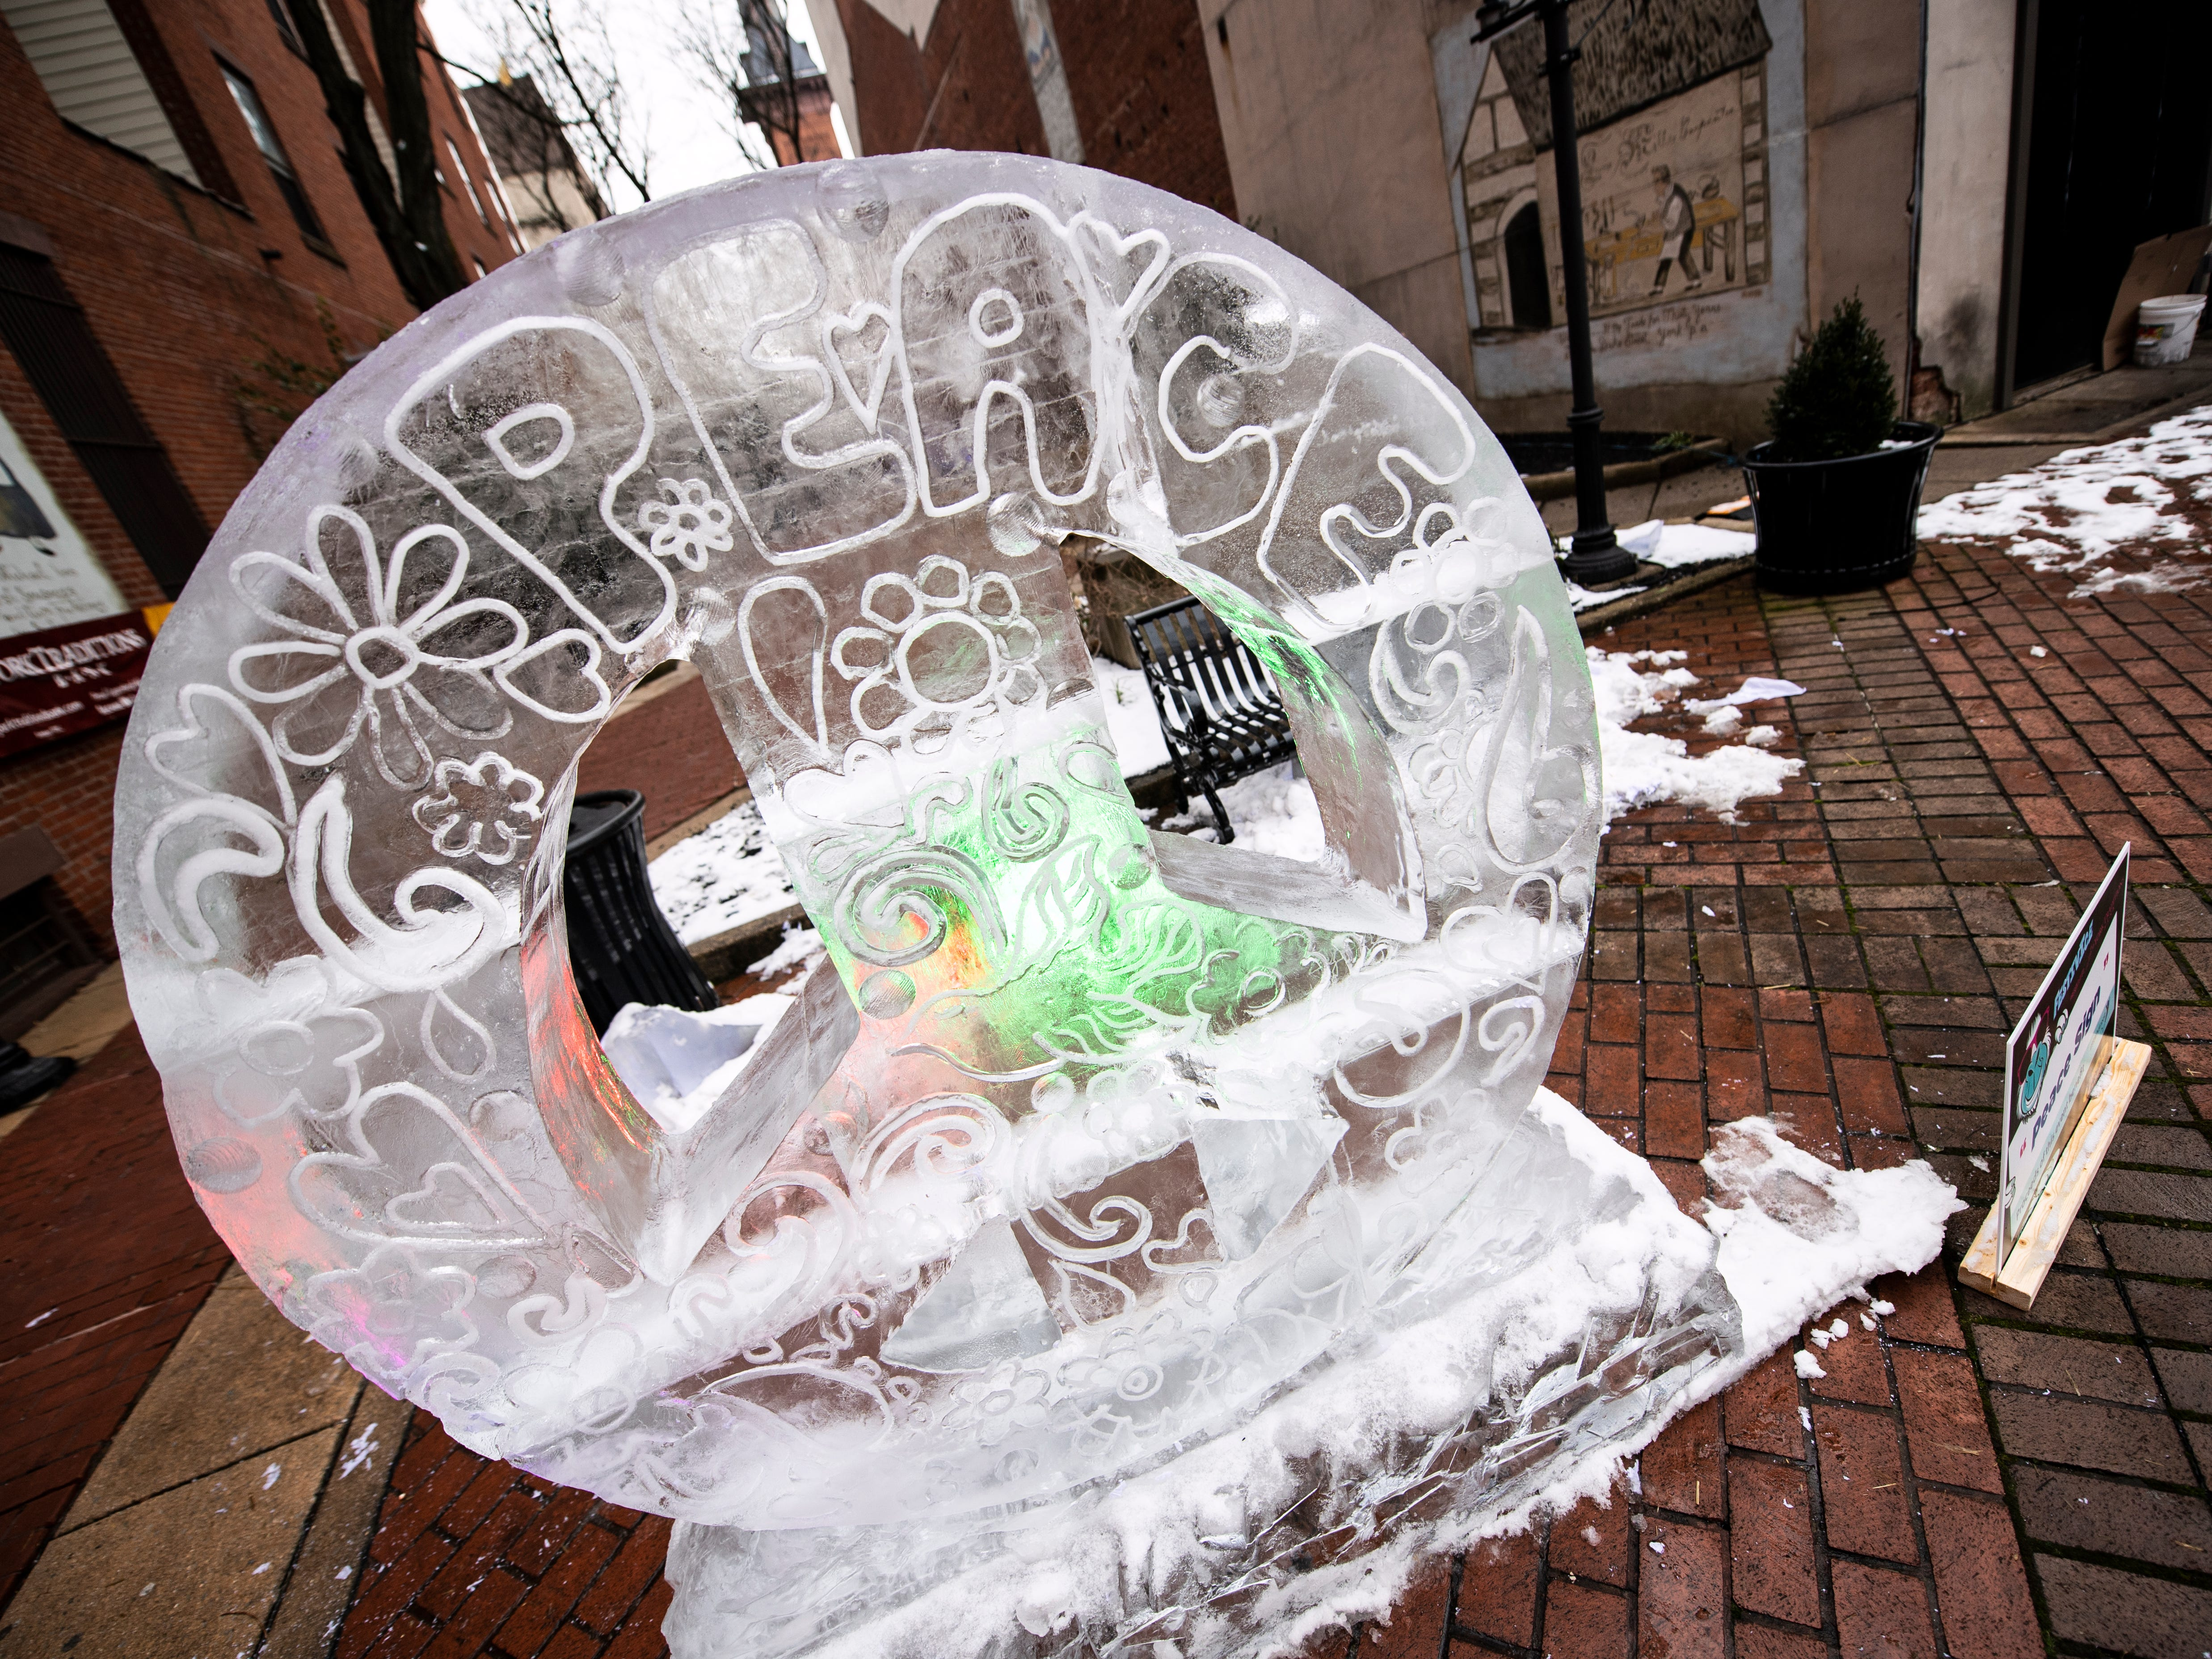 The 'peace sign' sculpture, decked out with lights, is one of more than two dozen ice sculptures in and around Cherry Lane in York.